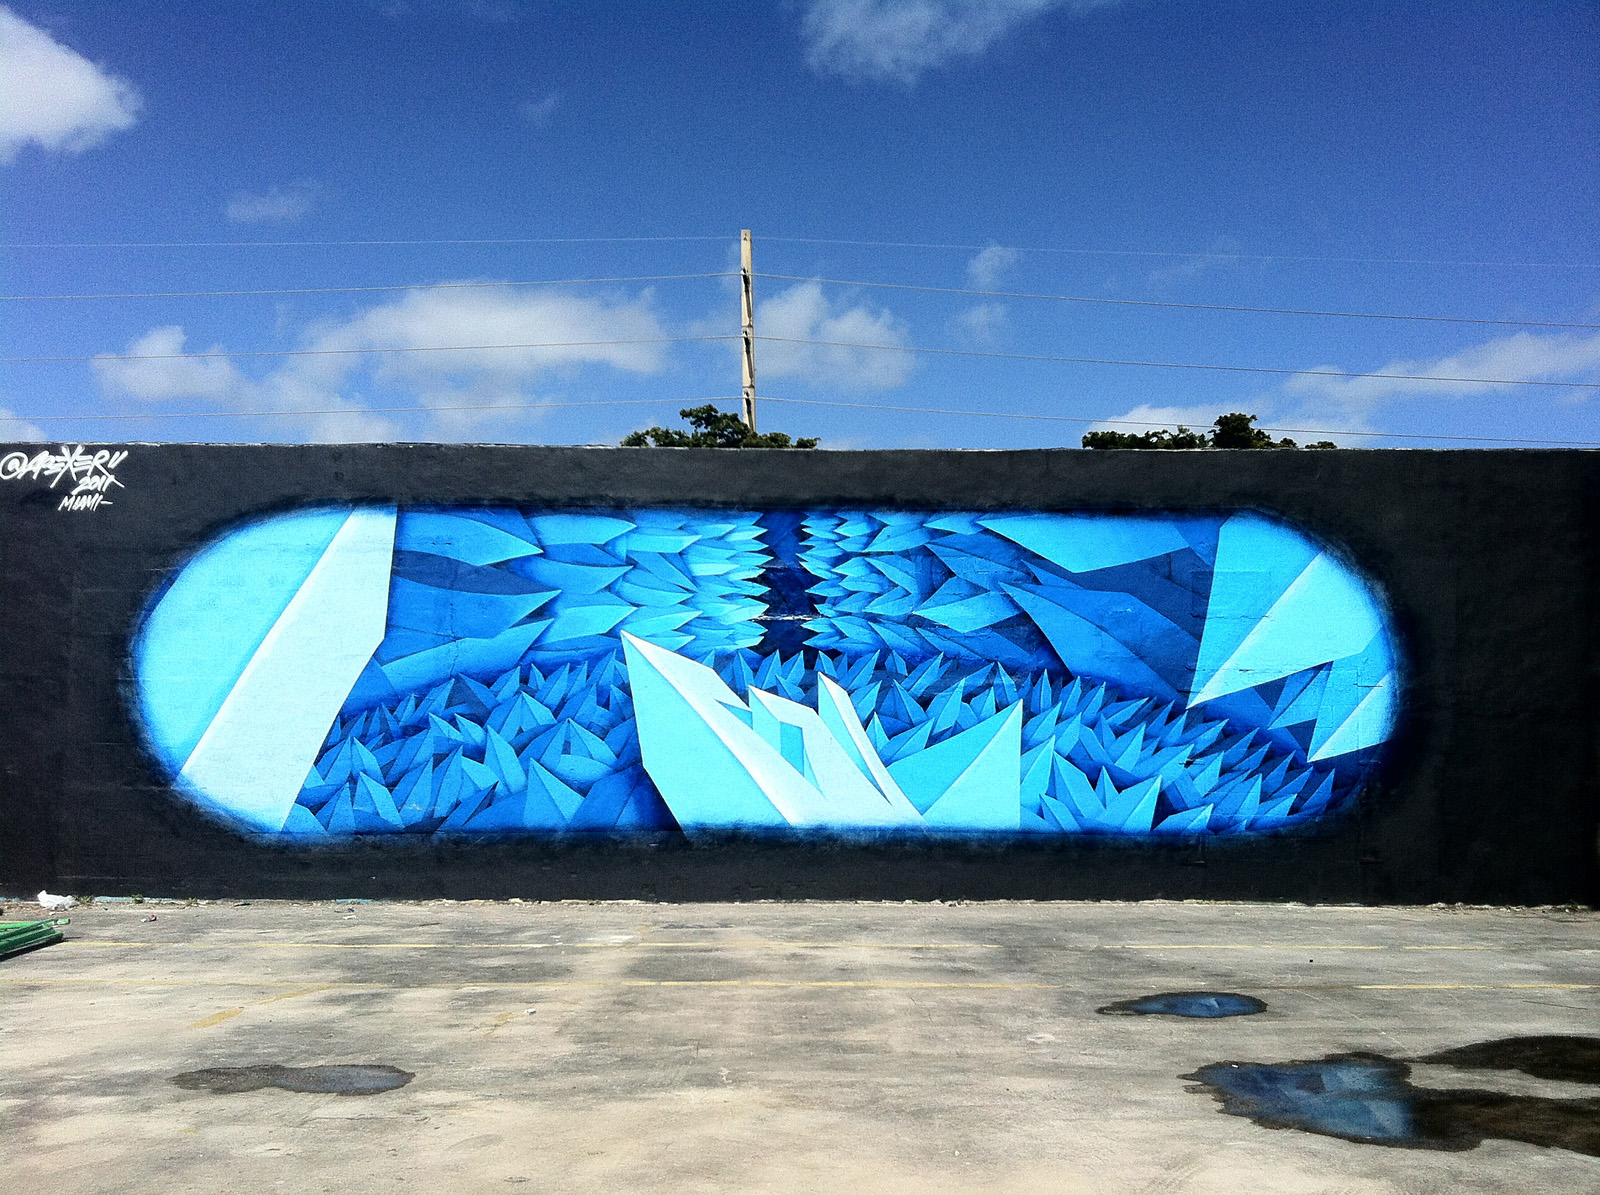 Apexer mural created for the Art Basel event in 2011